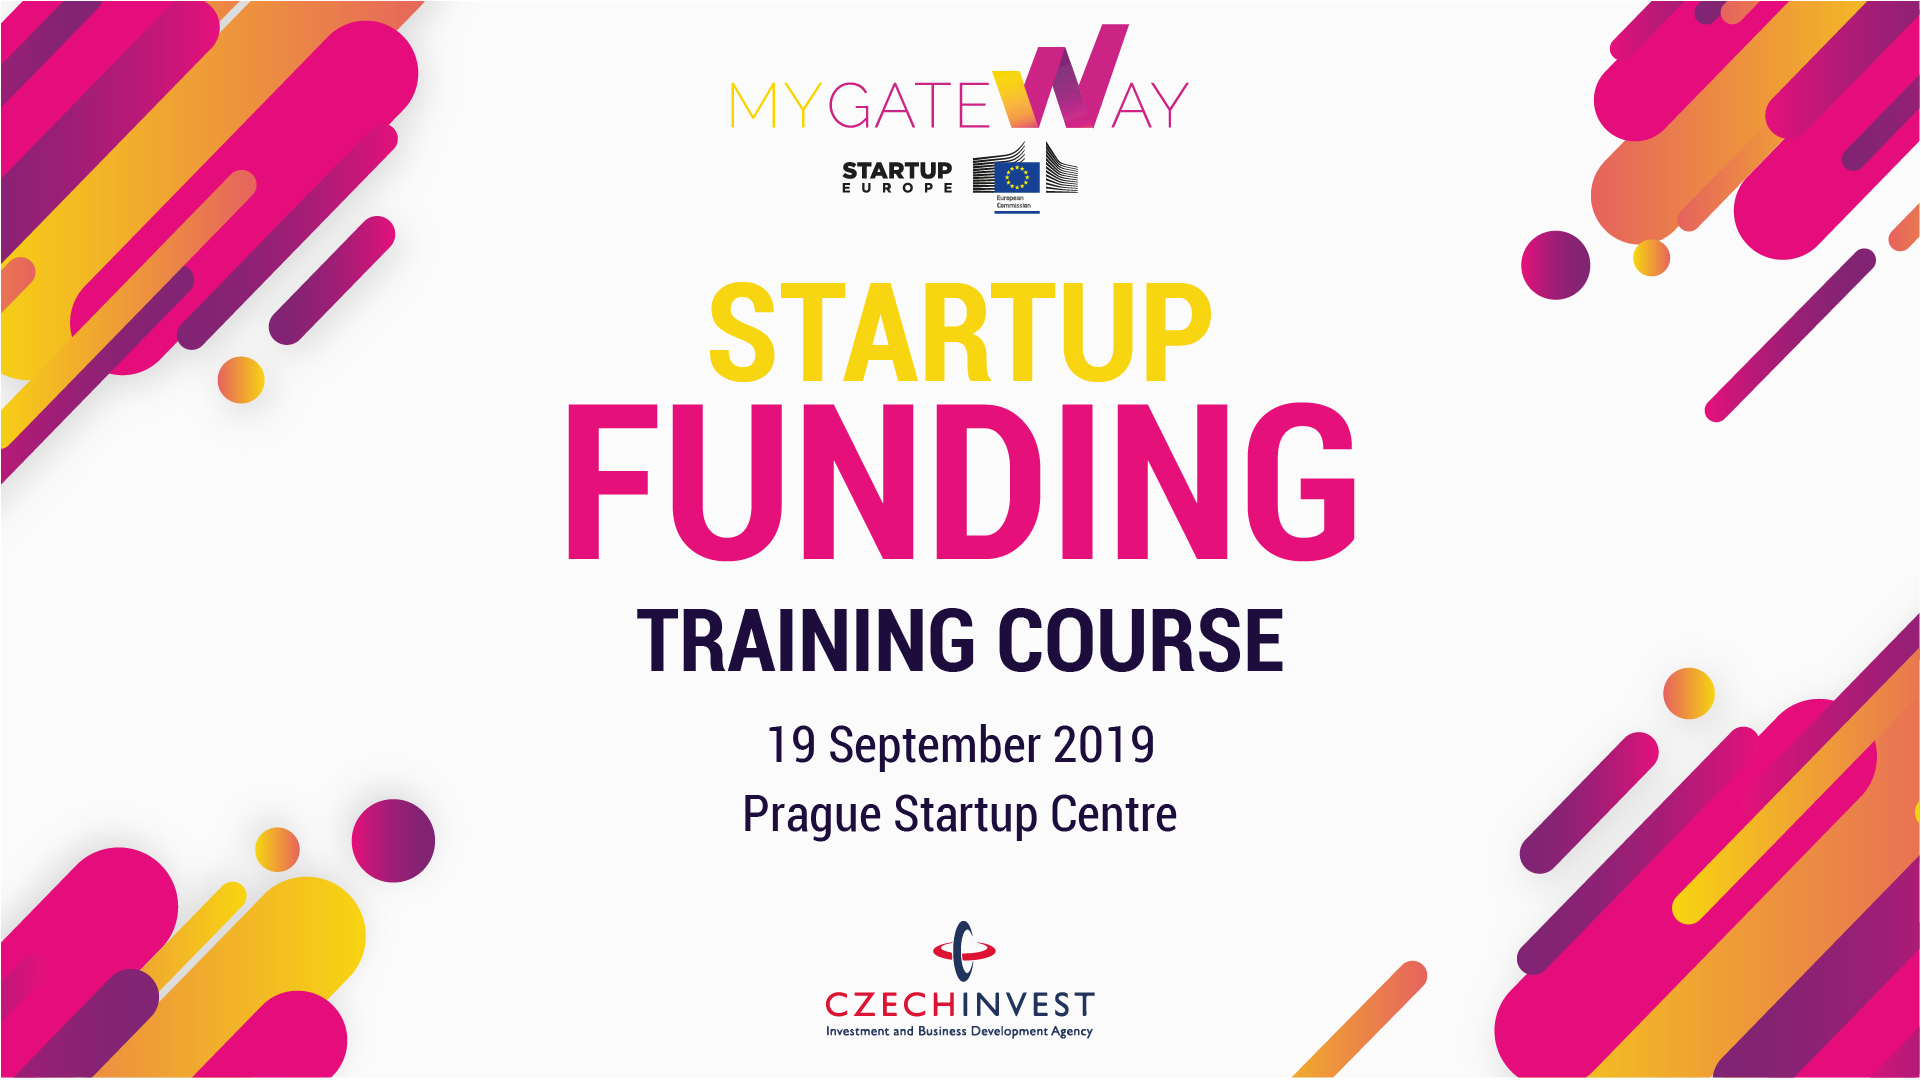 Startup Funding Training Course in Prague, Czech Republic